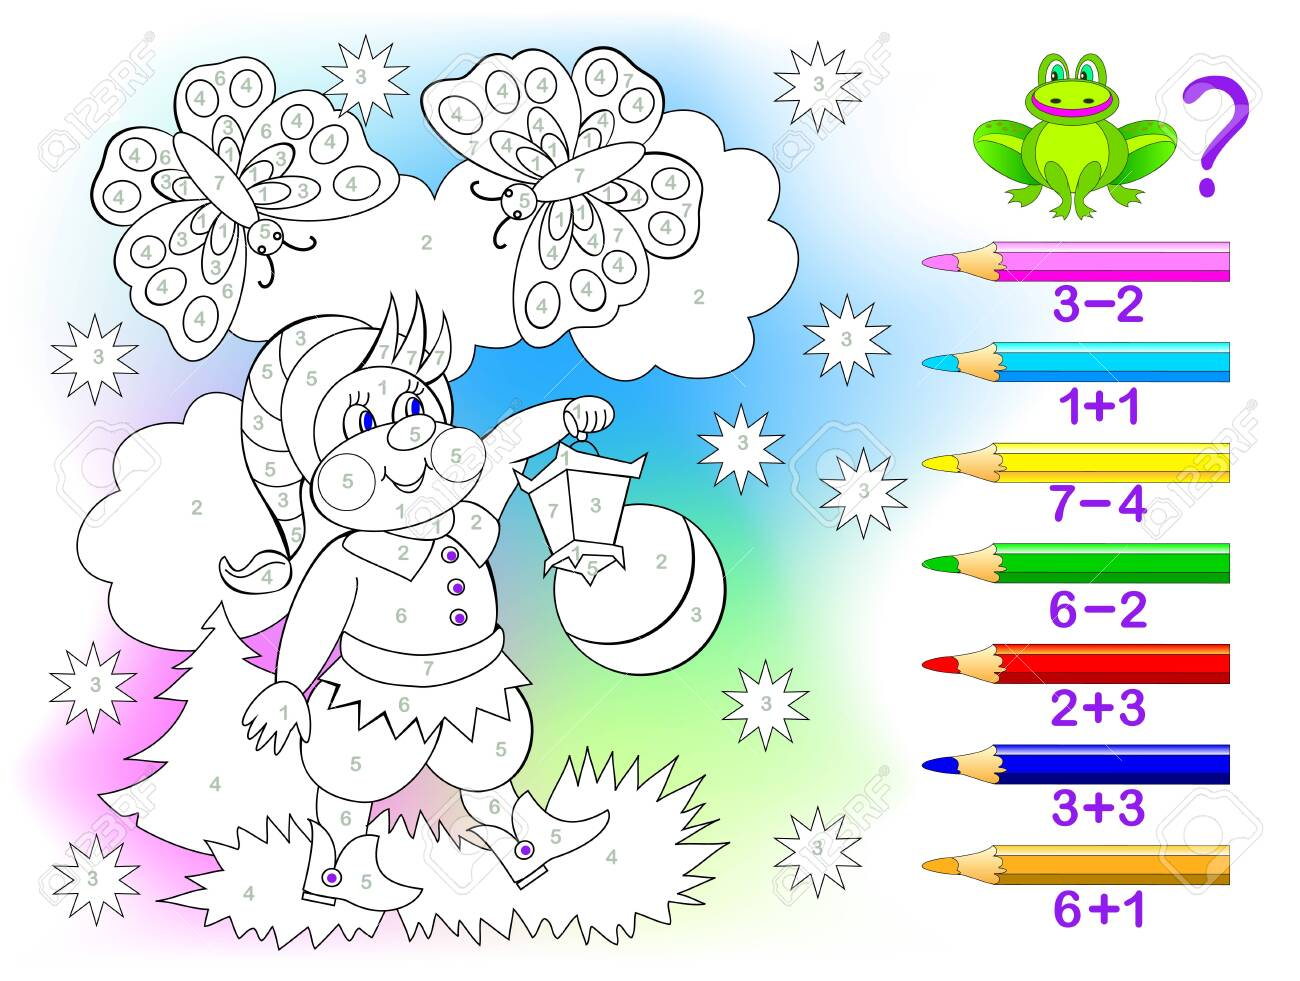 Educational page with exercises for children on addition and subtraction. Solve examples and paint the gnome in relevant colors. Developing skills for counting. Printable worksheet for kids textbook. - 128272852